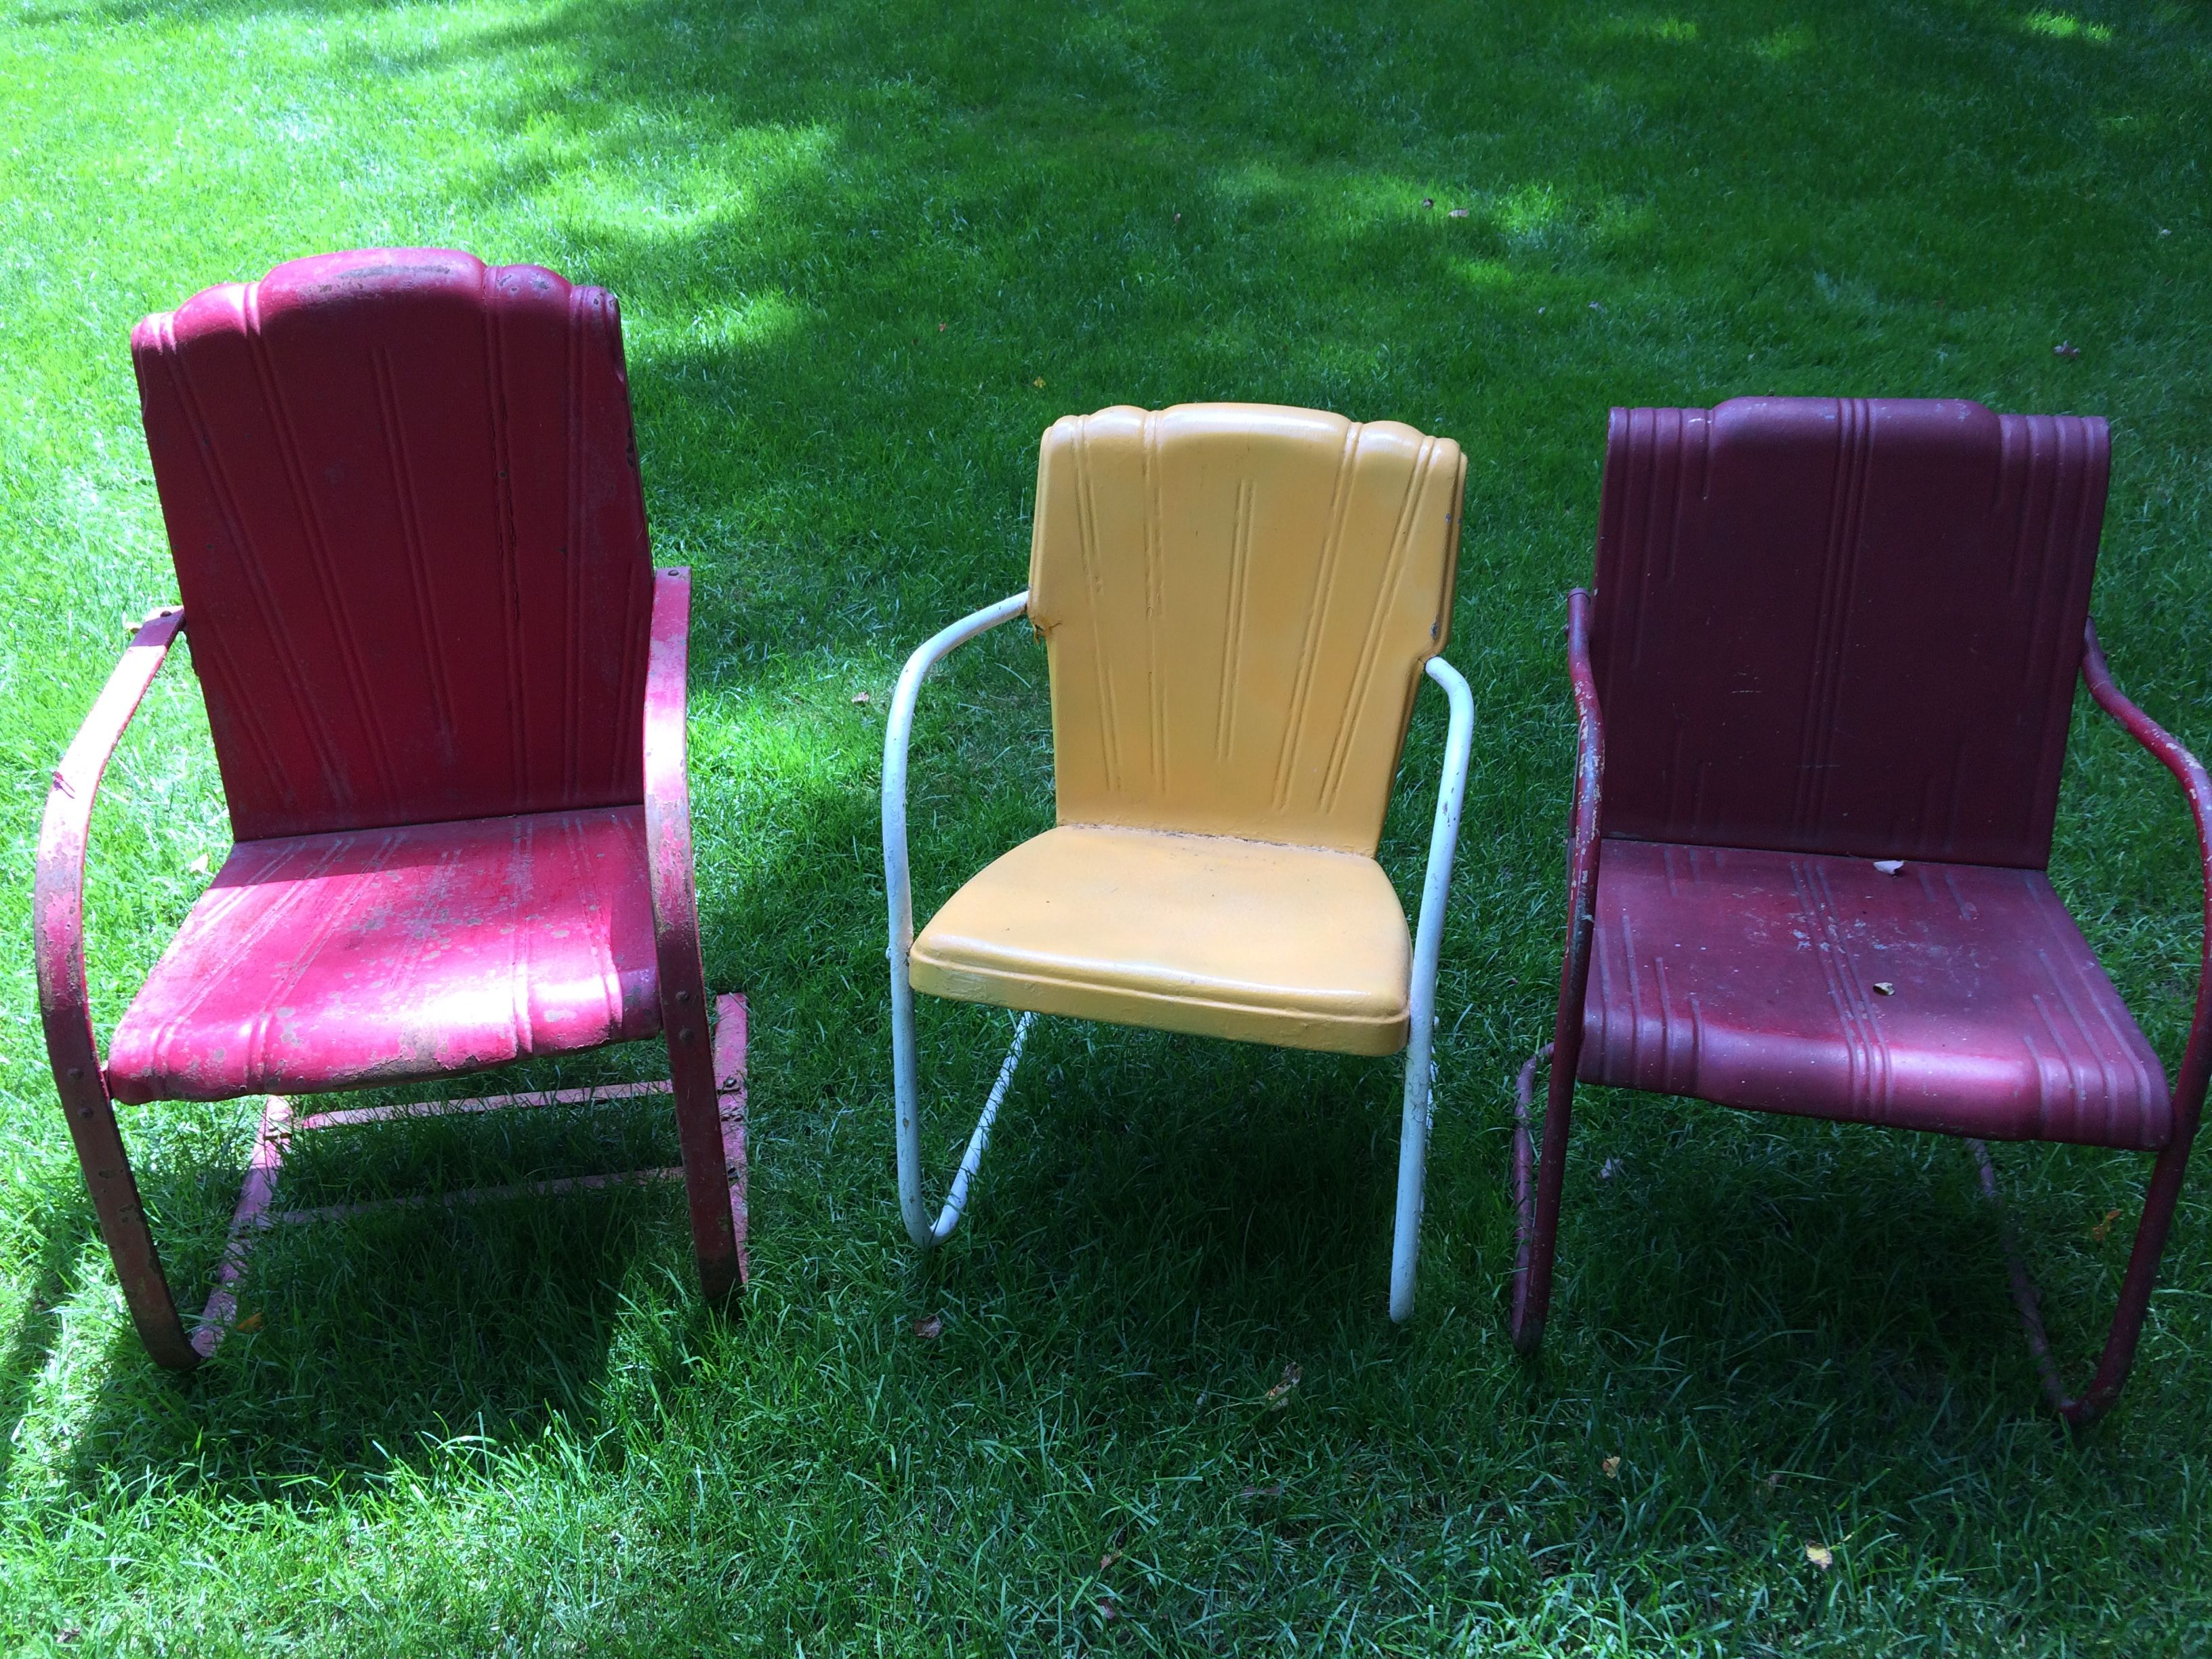 Right chair is a Harry Kranz designed 1938 vintage metal lawn